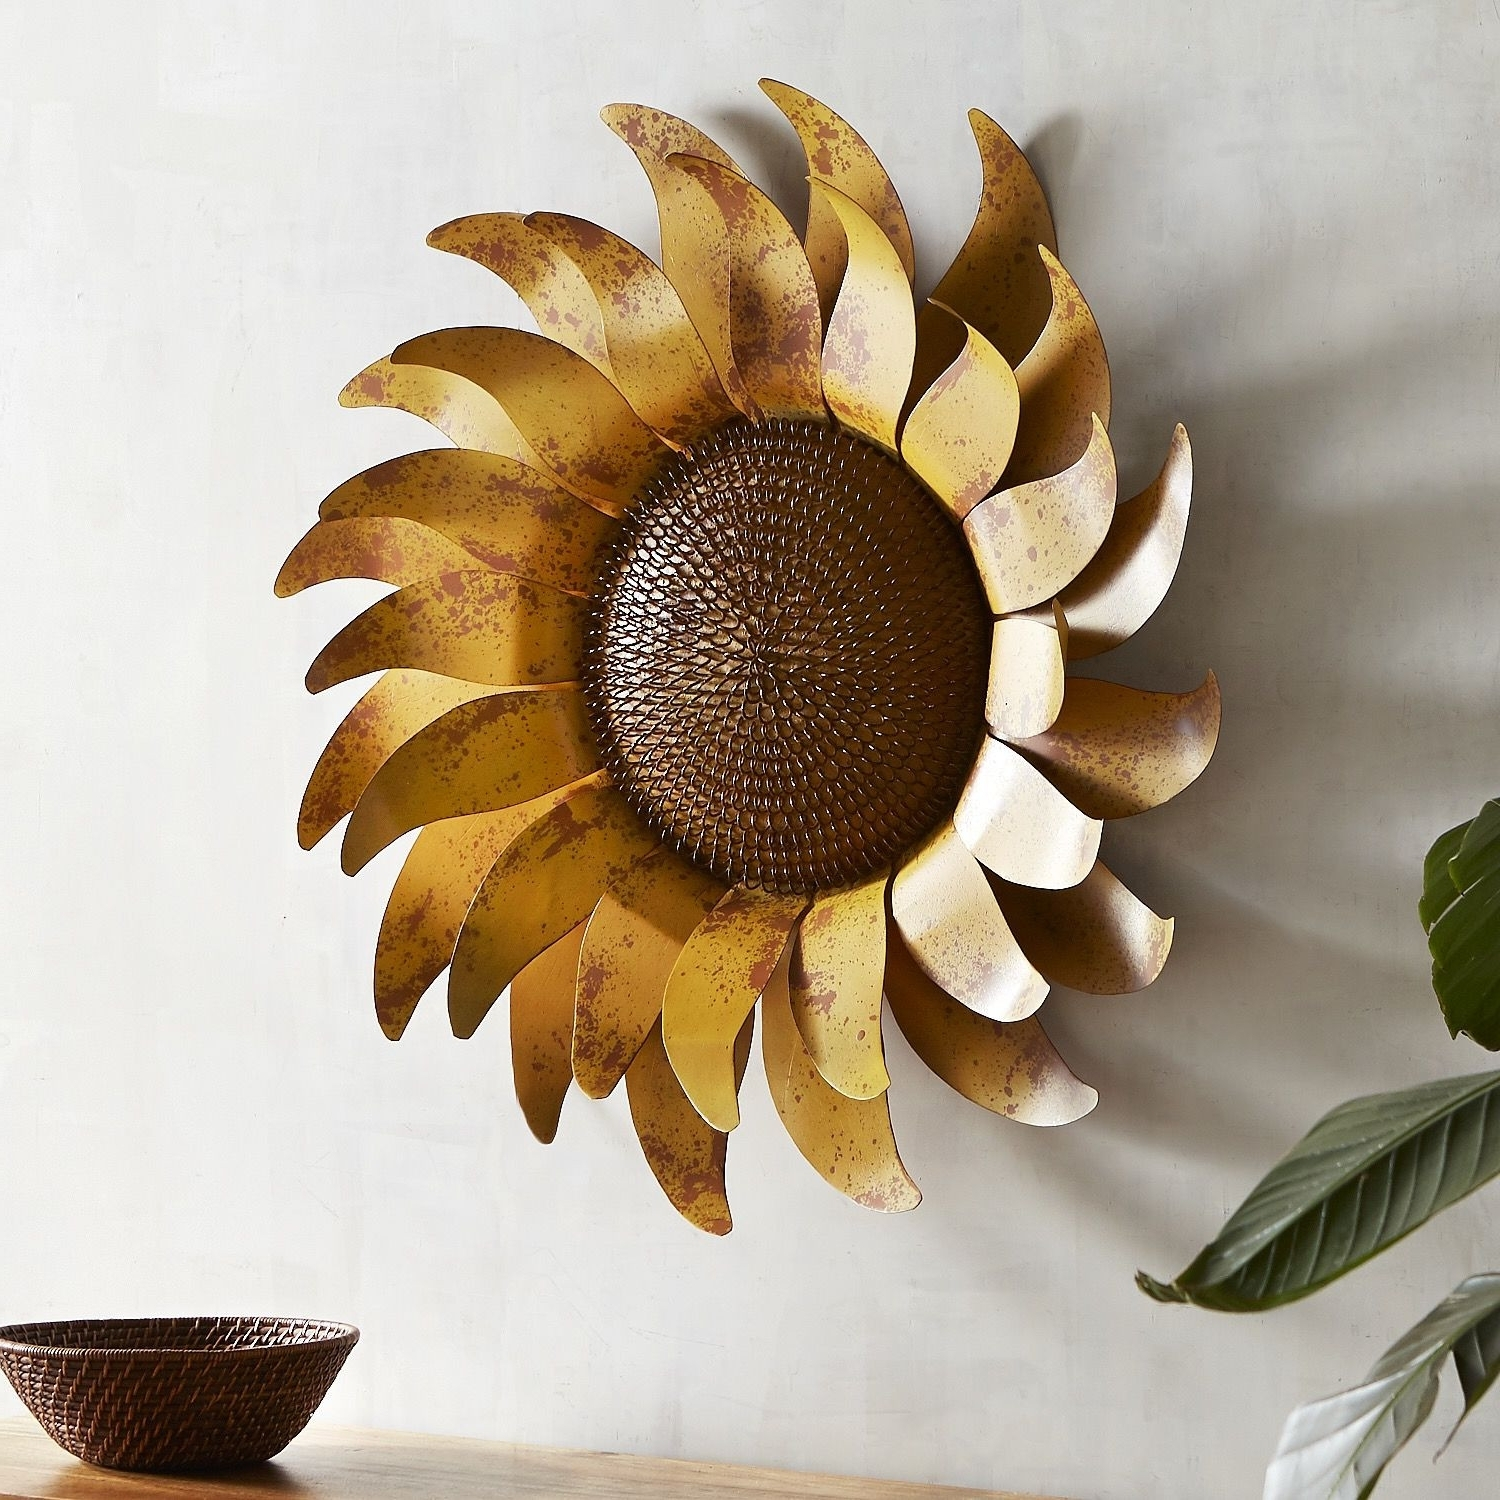 Sunflower Wall Art Intended For Most Recently Released Best Sunflower Wall Decor Decorating Inspiration Giant Design Ideas (Gallery 1 of 20)